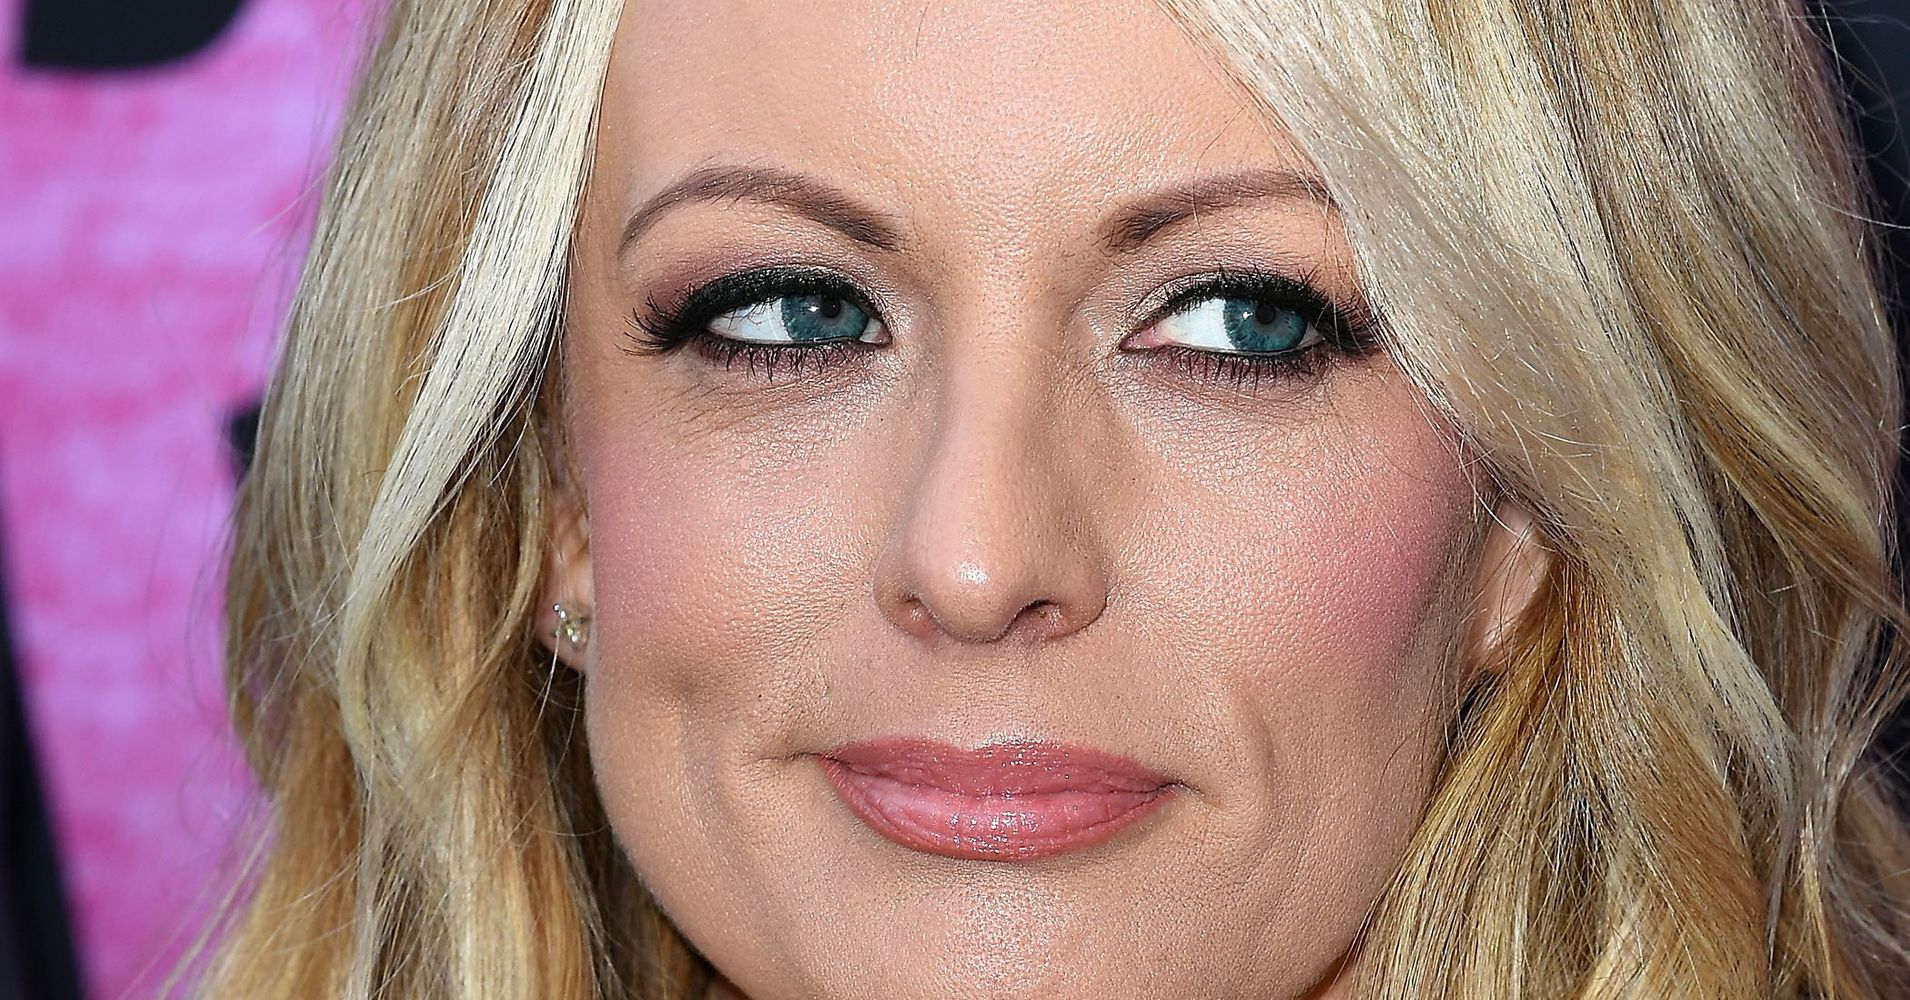 Stormy Daniels Says Old Lawyer Was A 'Puppet' For Donald Trump: Lawsuit